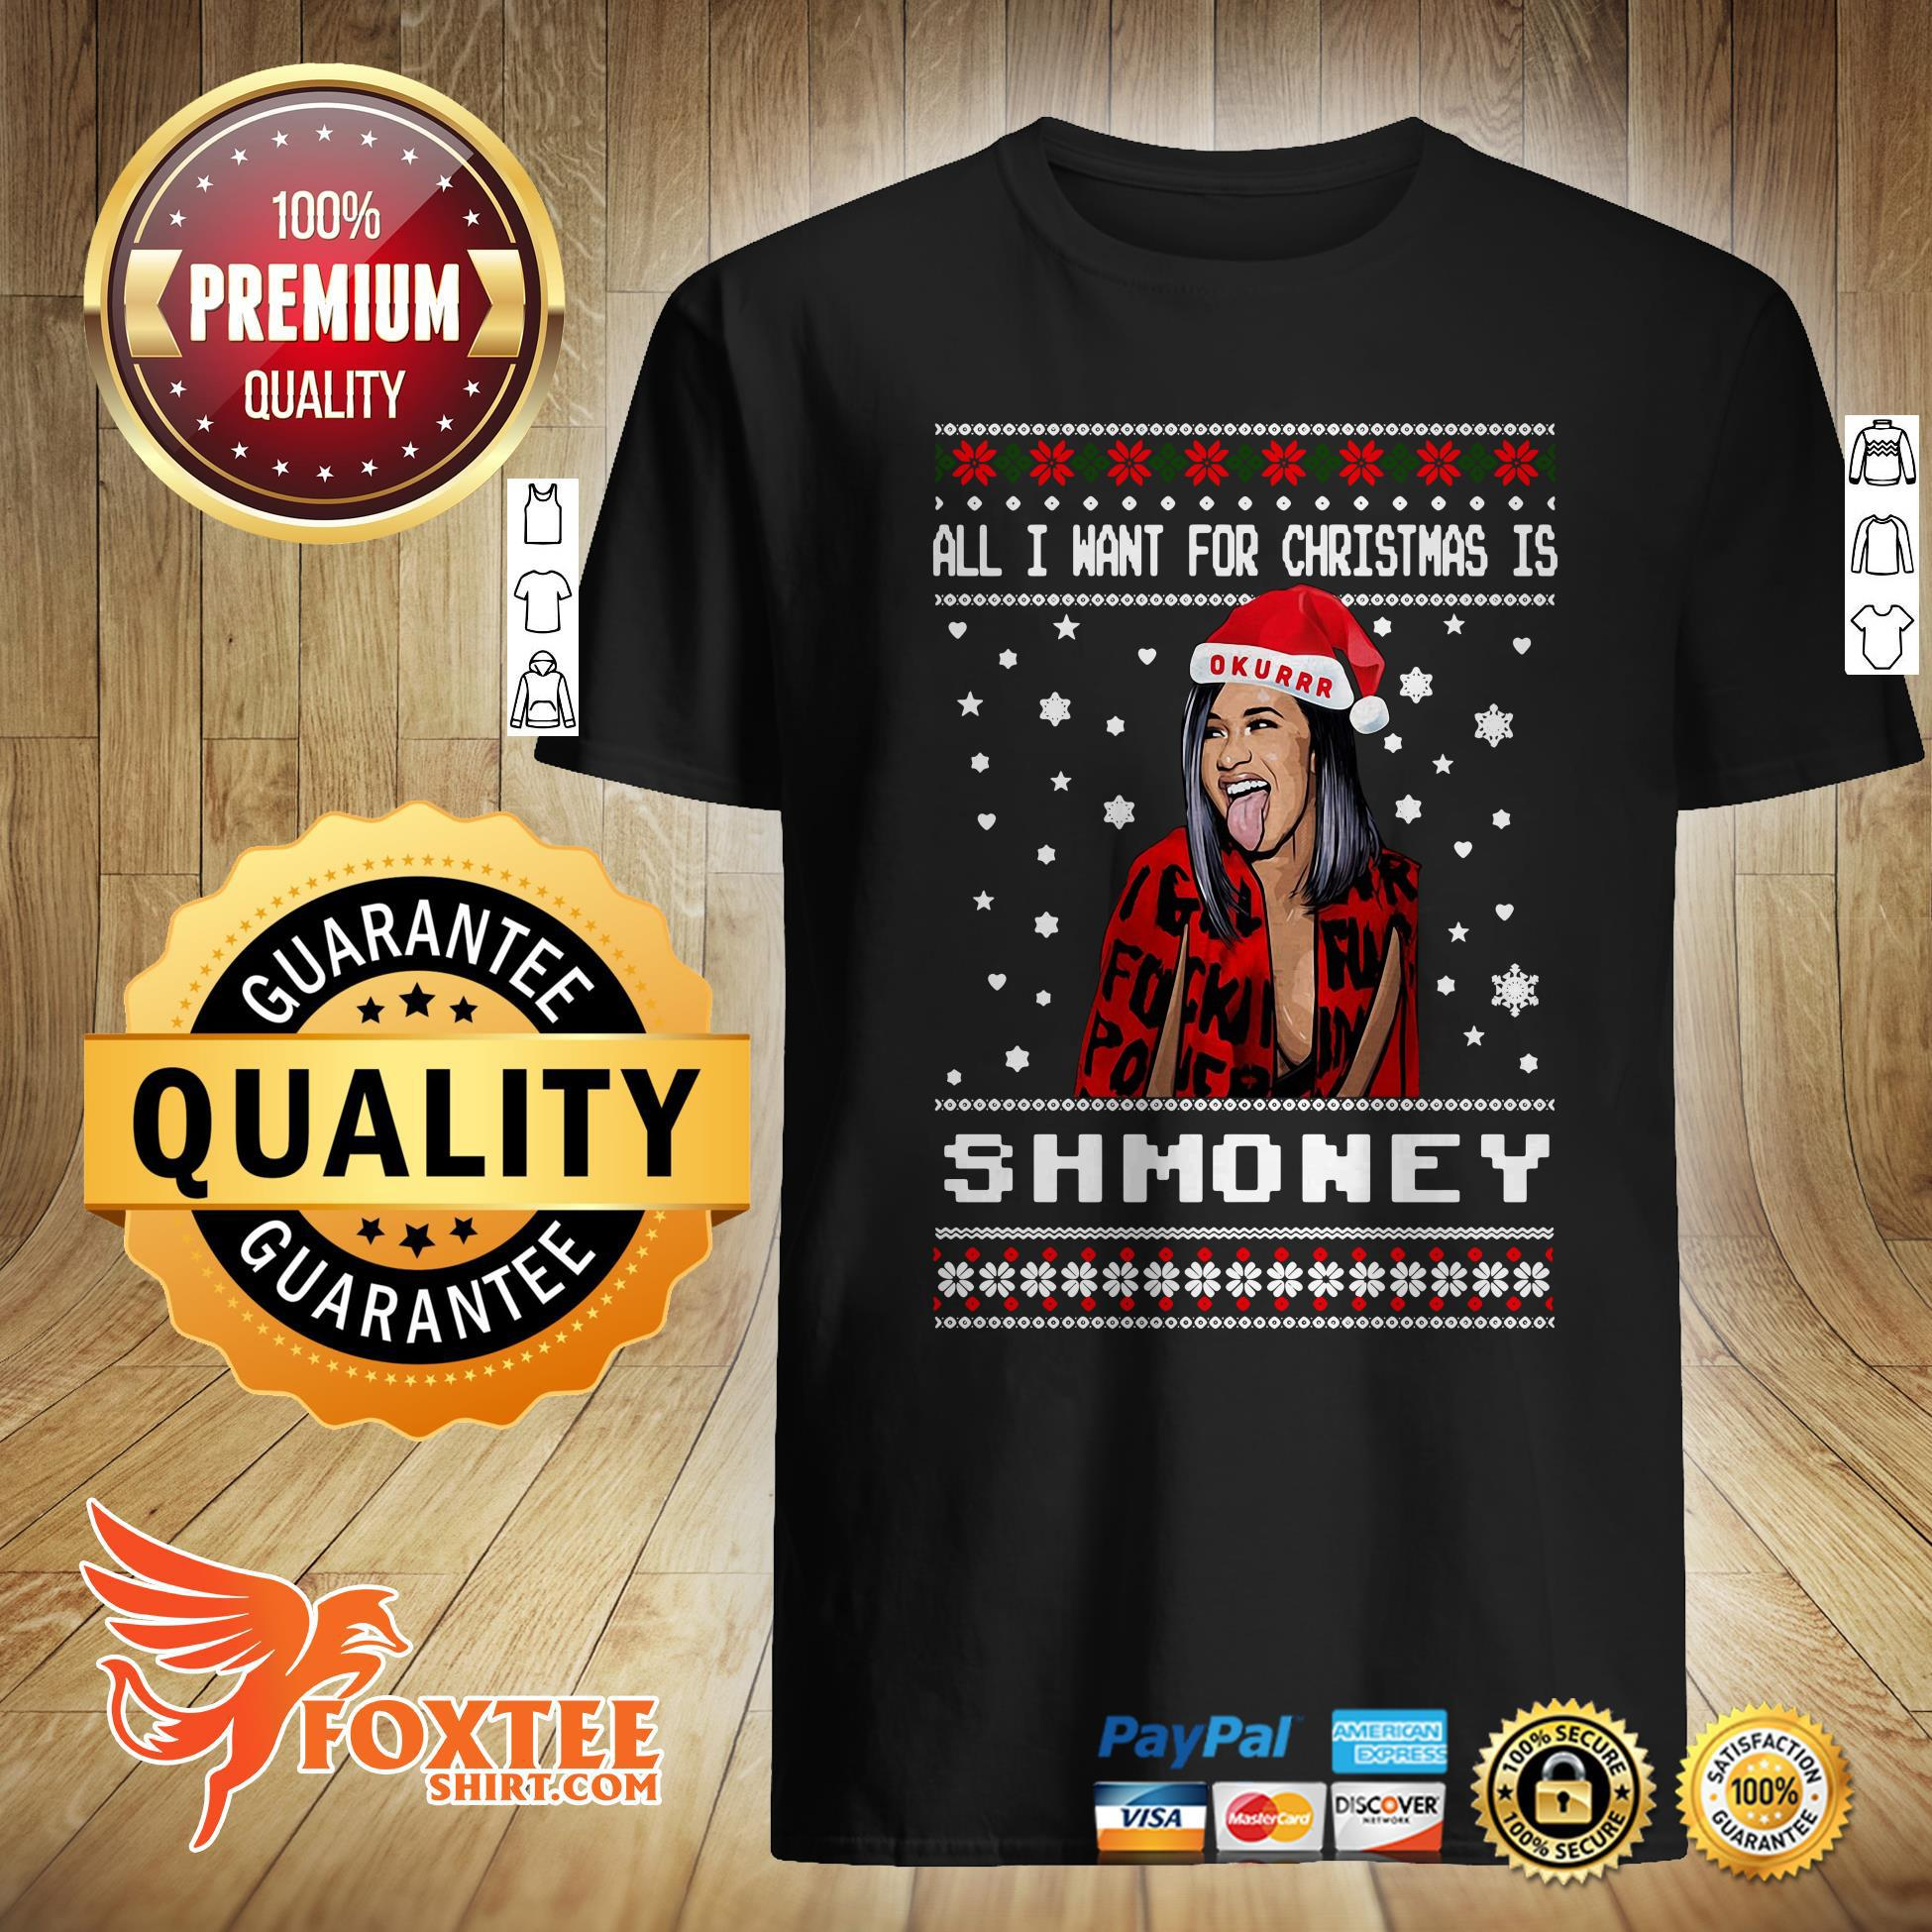 All I Want For Christmas Is Shmoney Cardi B Okurrr Ugly Christmas Sweater